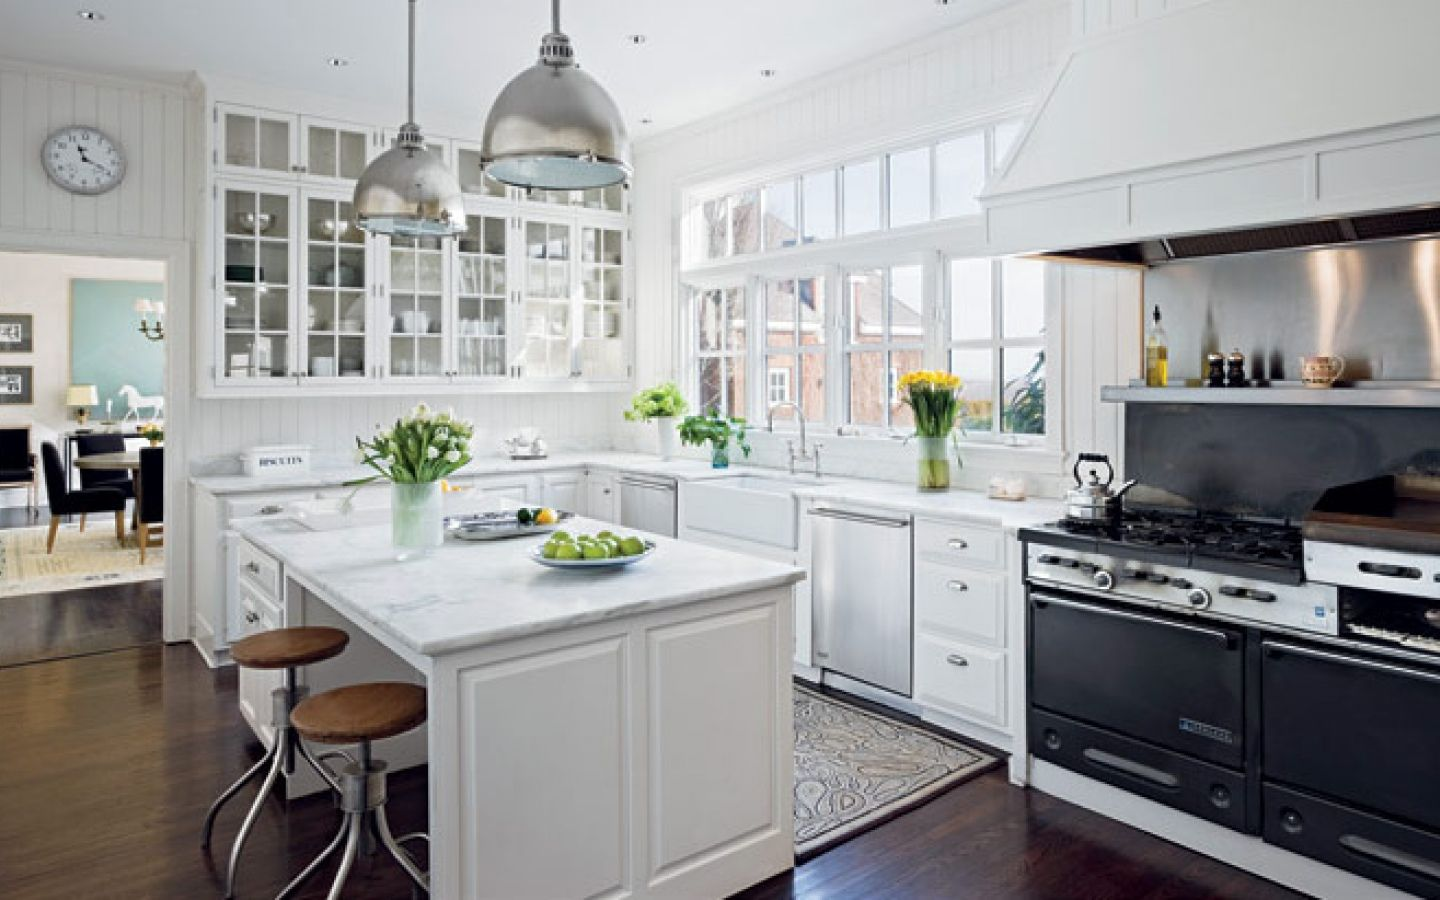 Beautiful White Country Kitchens picture of modern country kitchen design with white cabinet